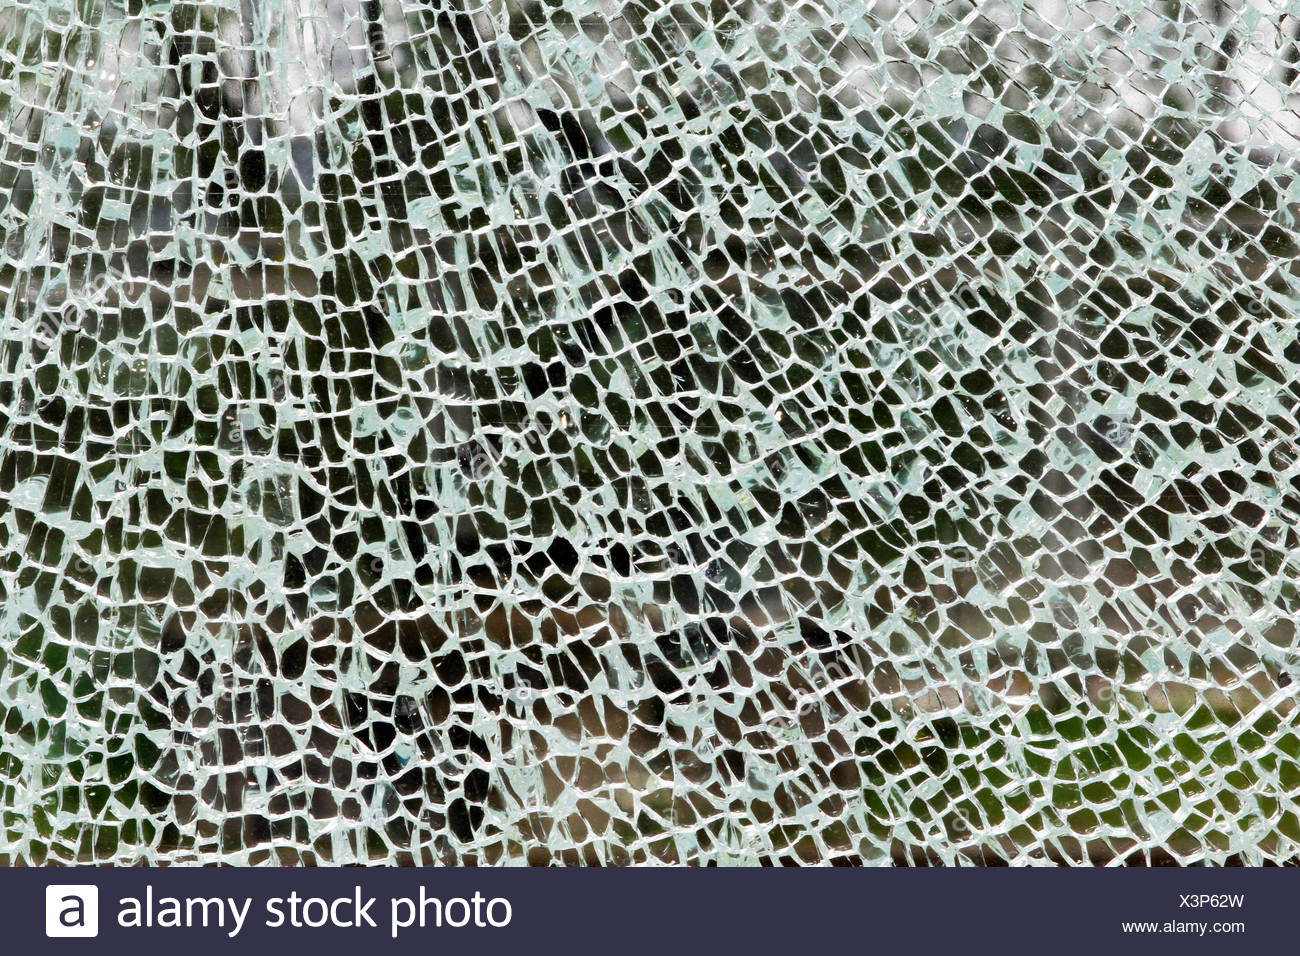 security glass broke after a forceful impact, Ruhr Area, Essen - Stock Image